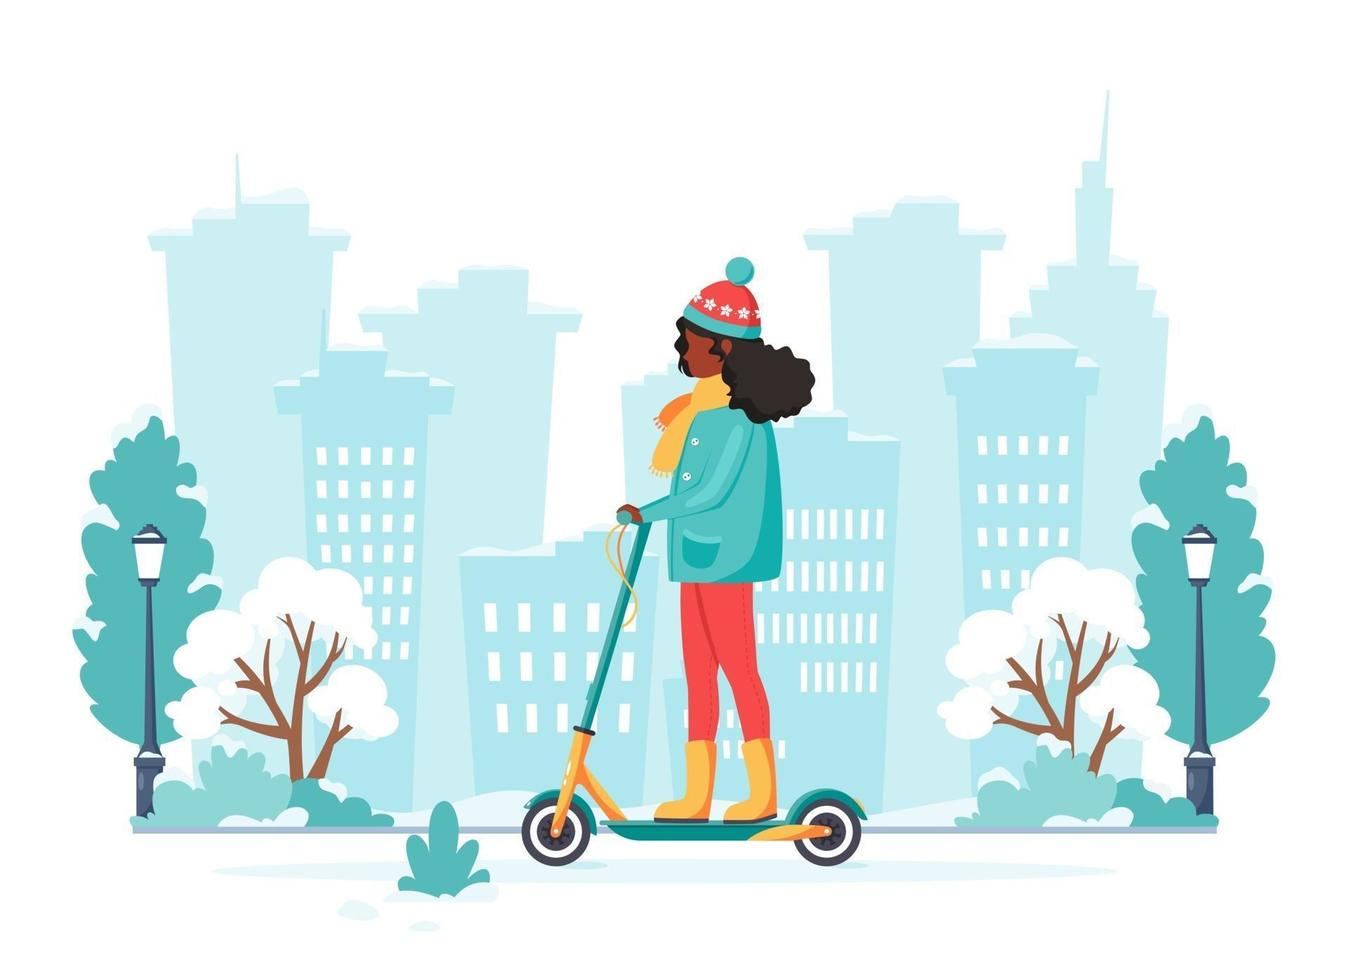 Black woman riding electric kick scooter in winter. Eco transport concept. Vector illustration